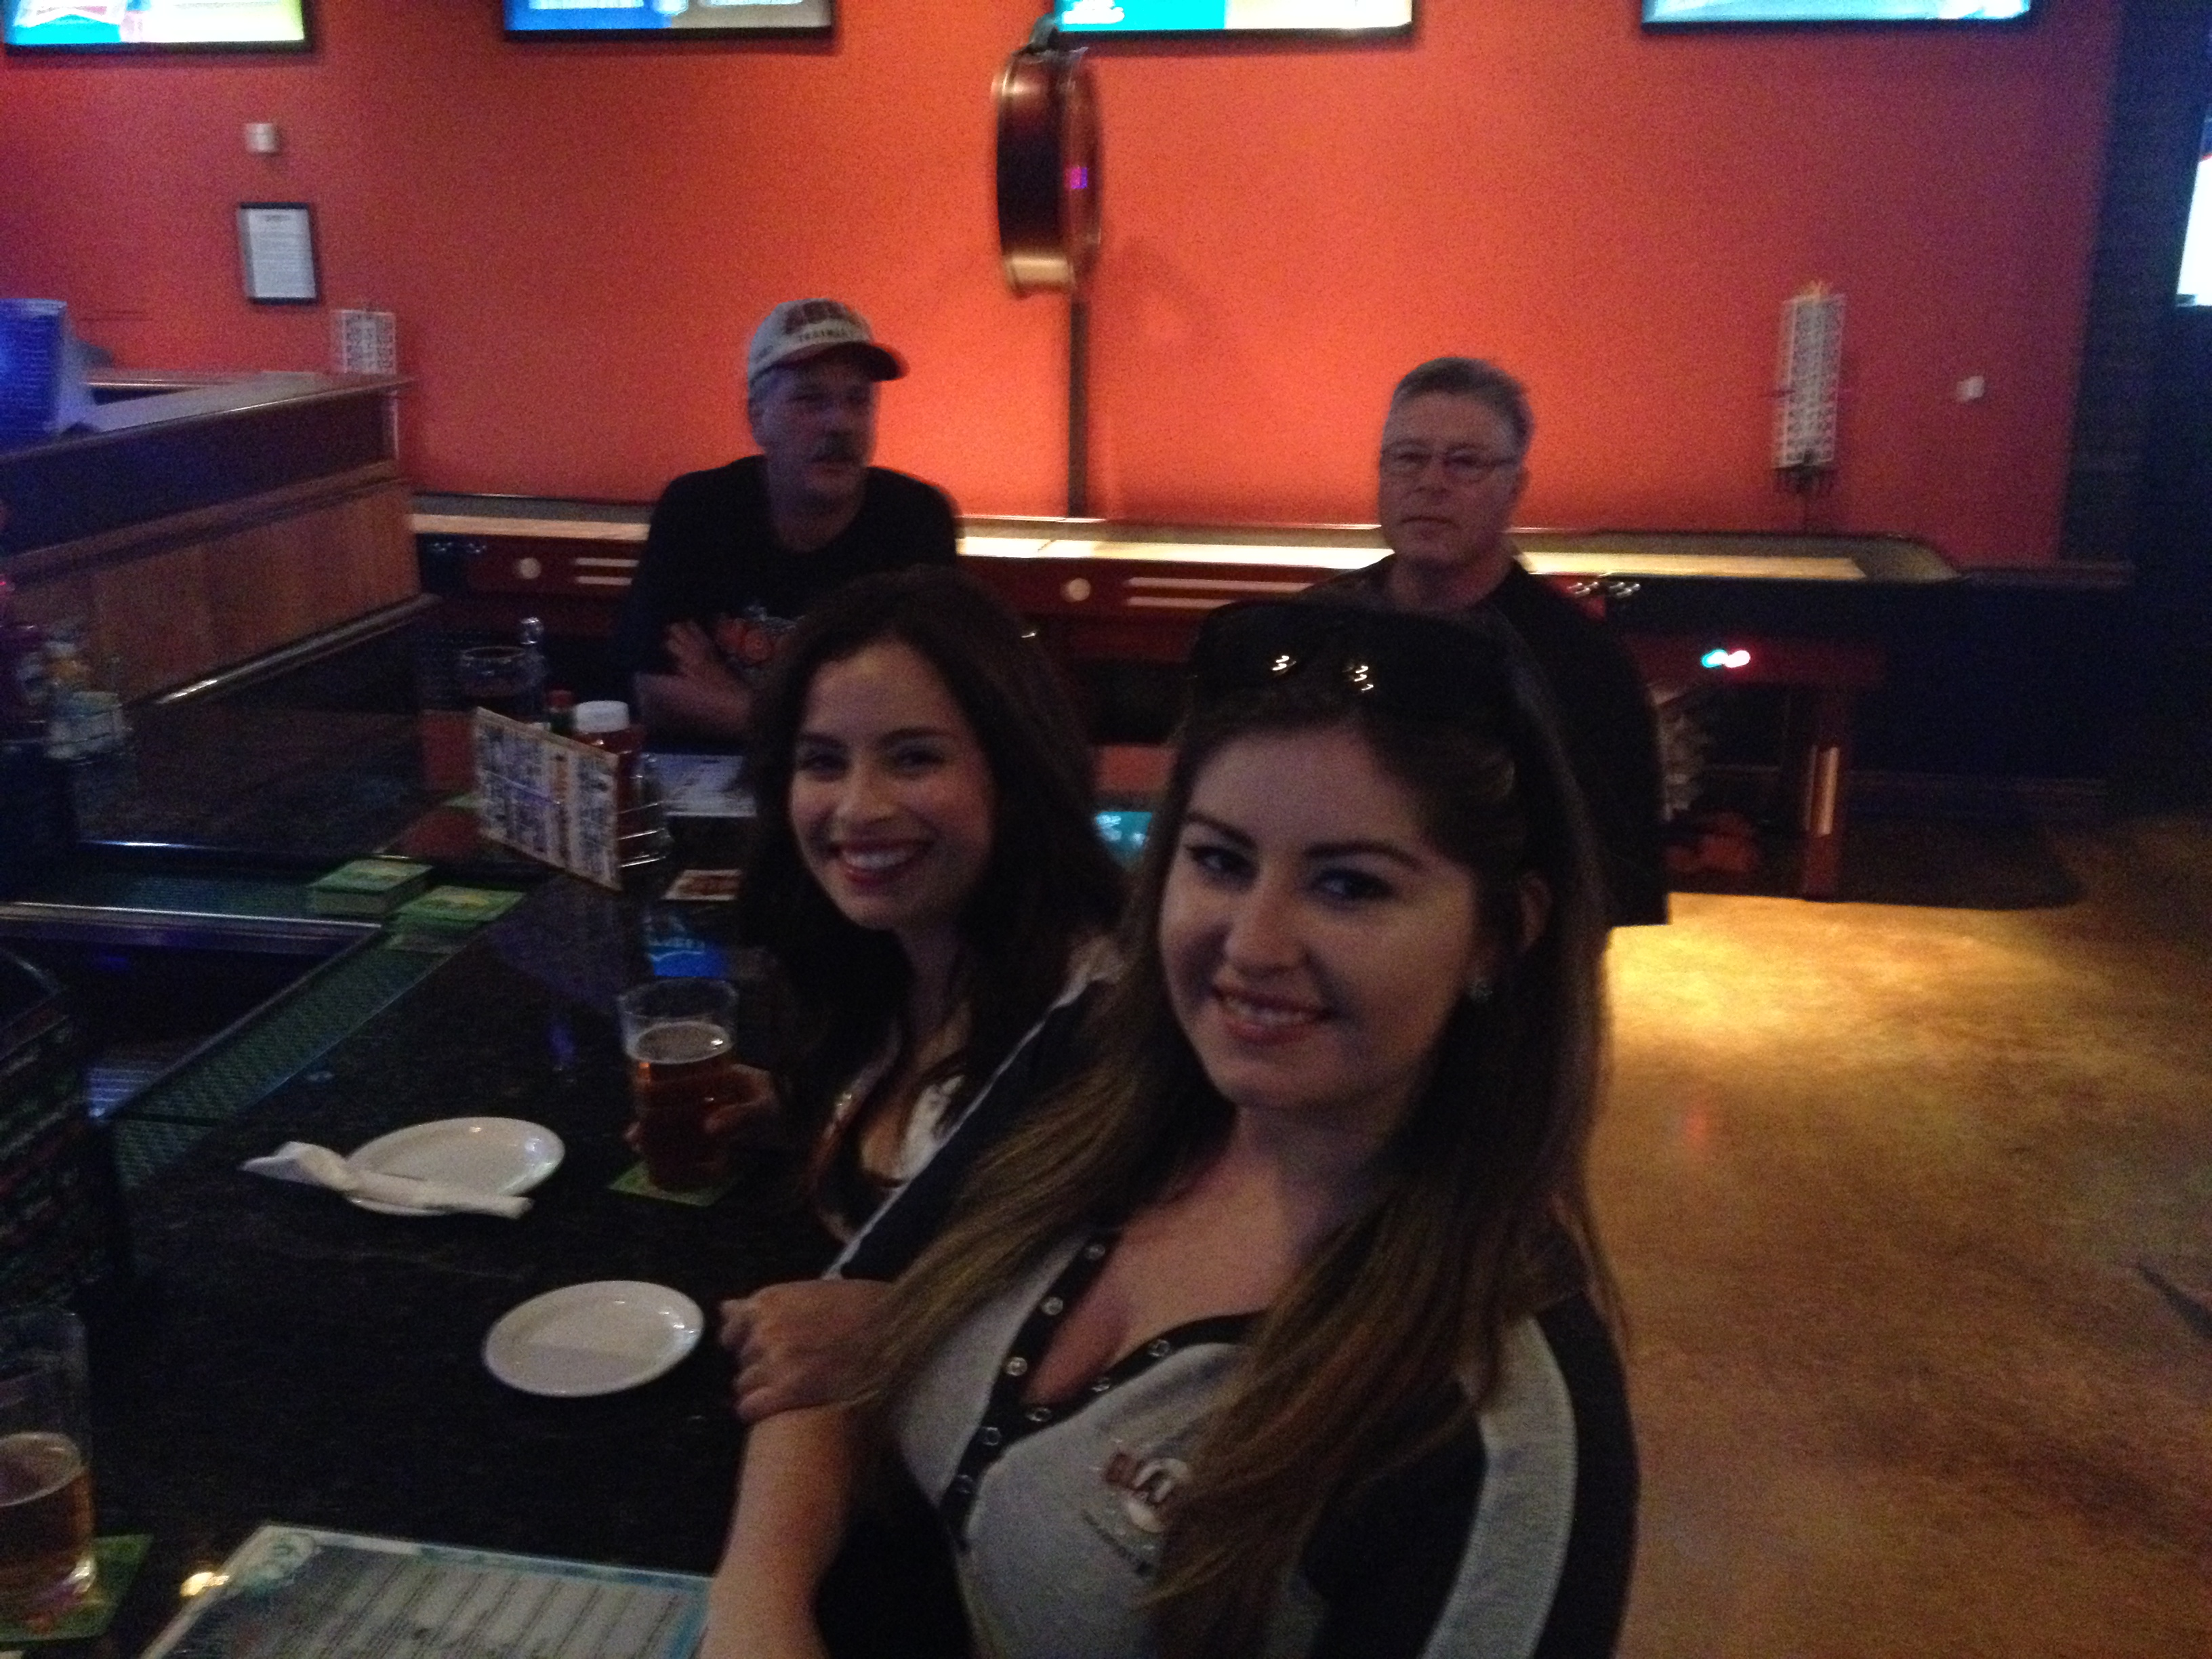 Giants fans enjoy the game at Tailgaters in Antioch Giants fans enjoying the playoff games, good for local businesses